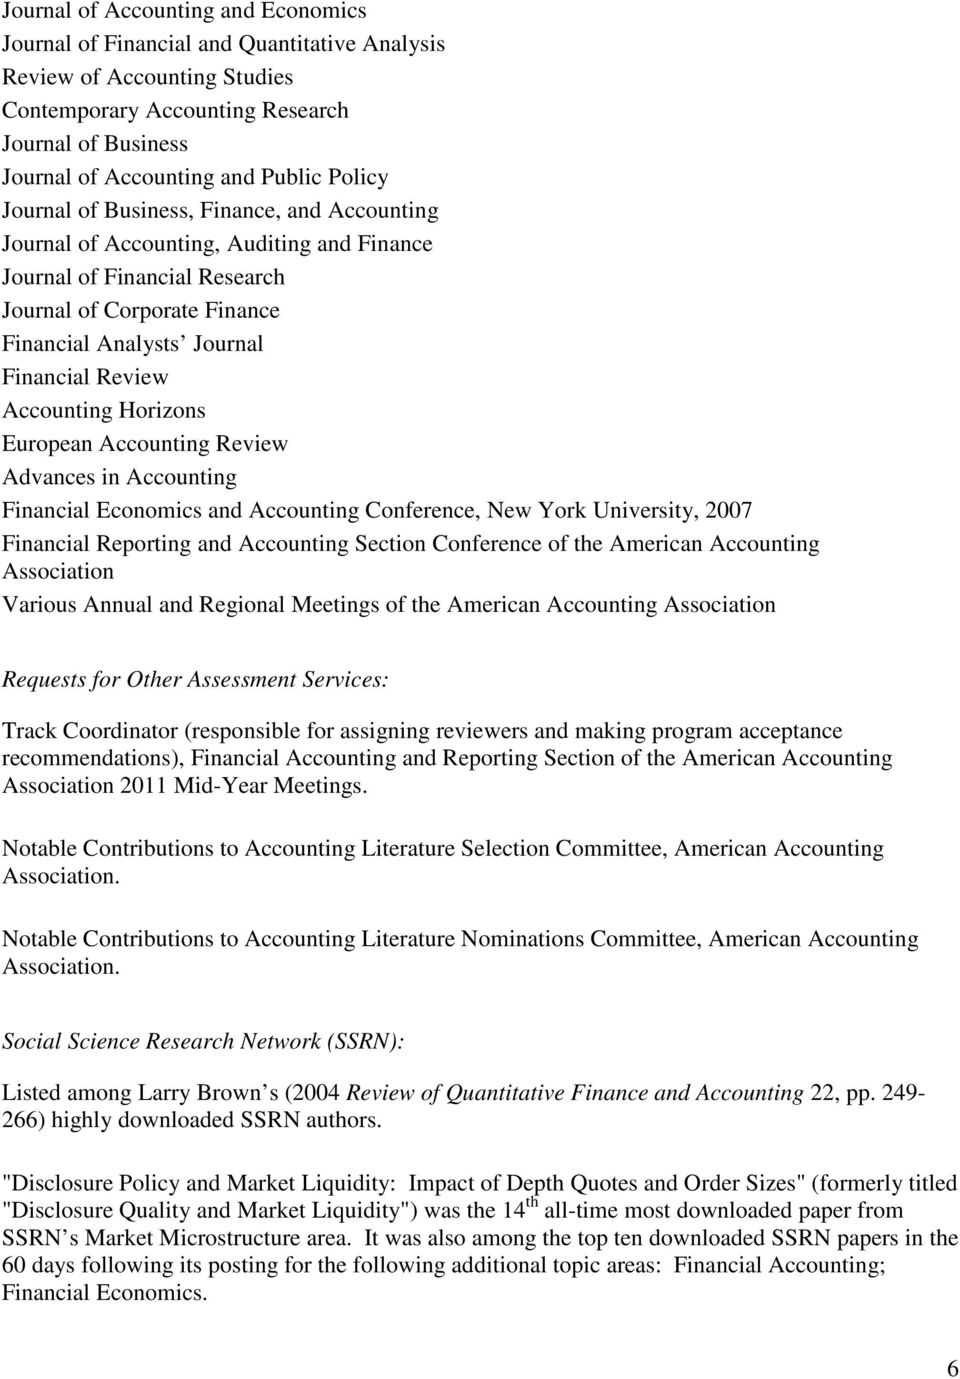 Accounting Horizons European Accounting Review Advances in Accounting Financial Economics and Accounting Conference, New York University, 2007 Financial Reporting and Accounting Section Conference of